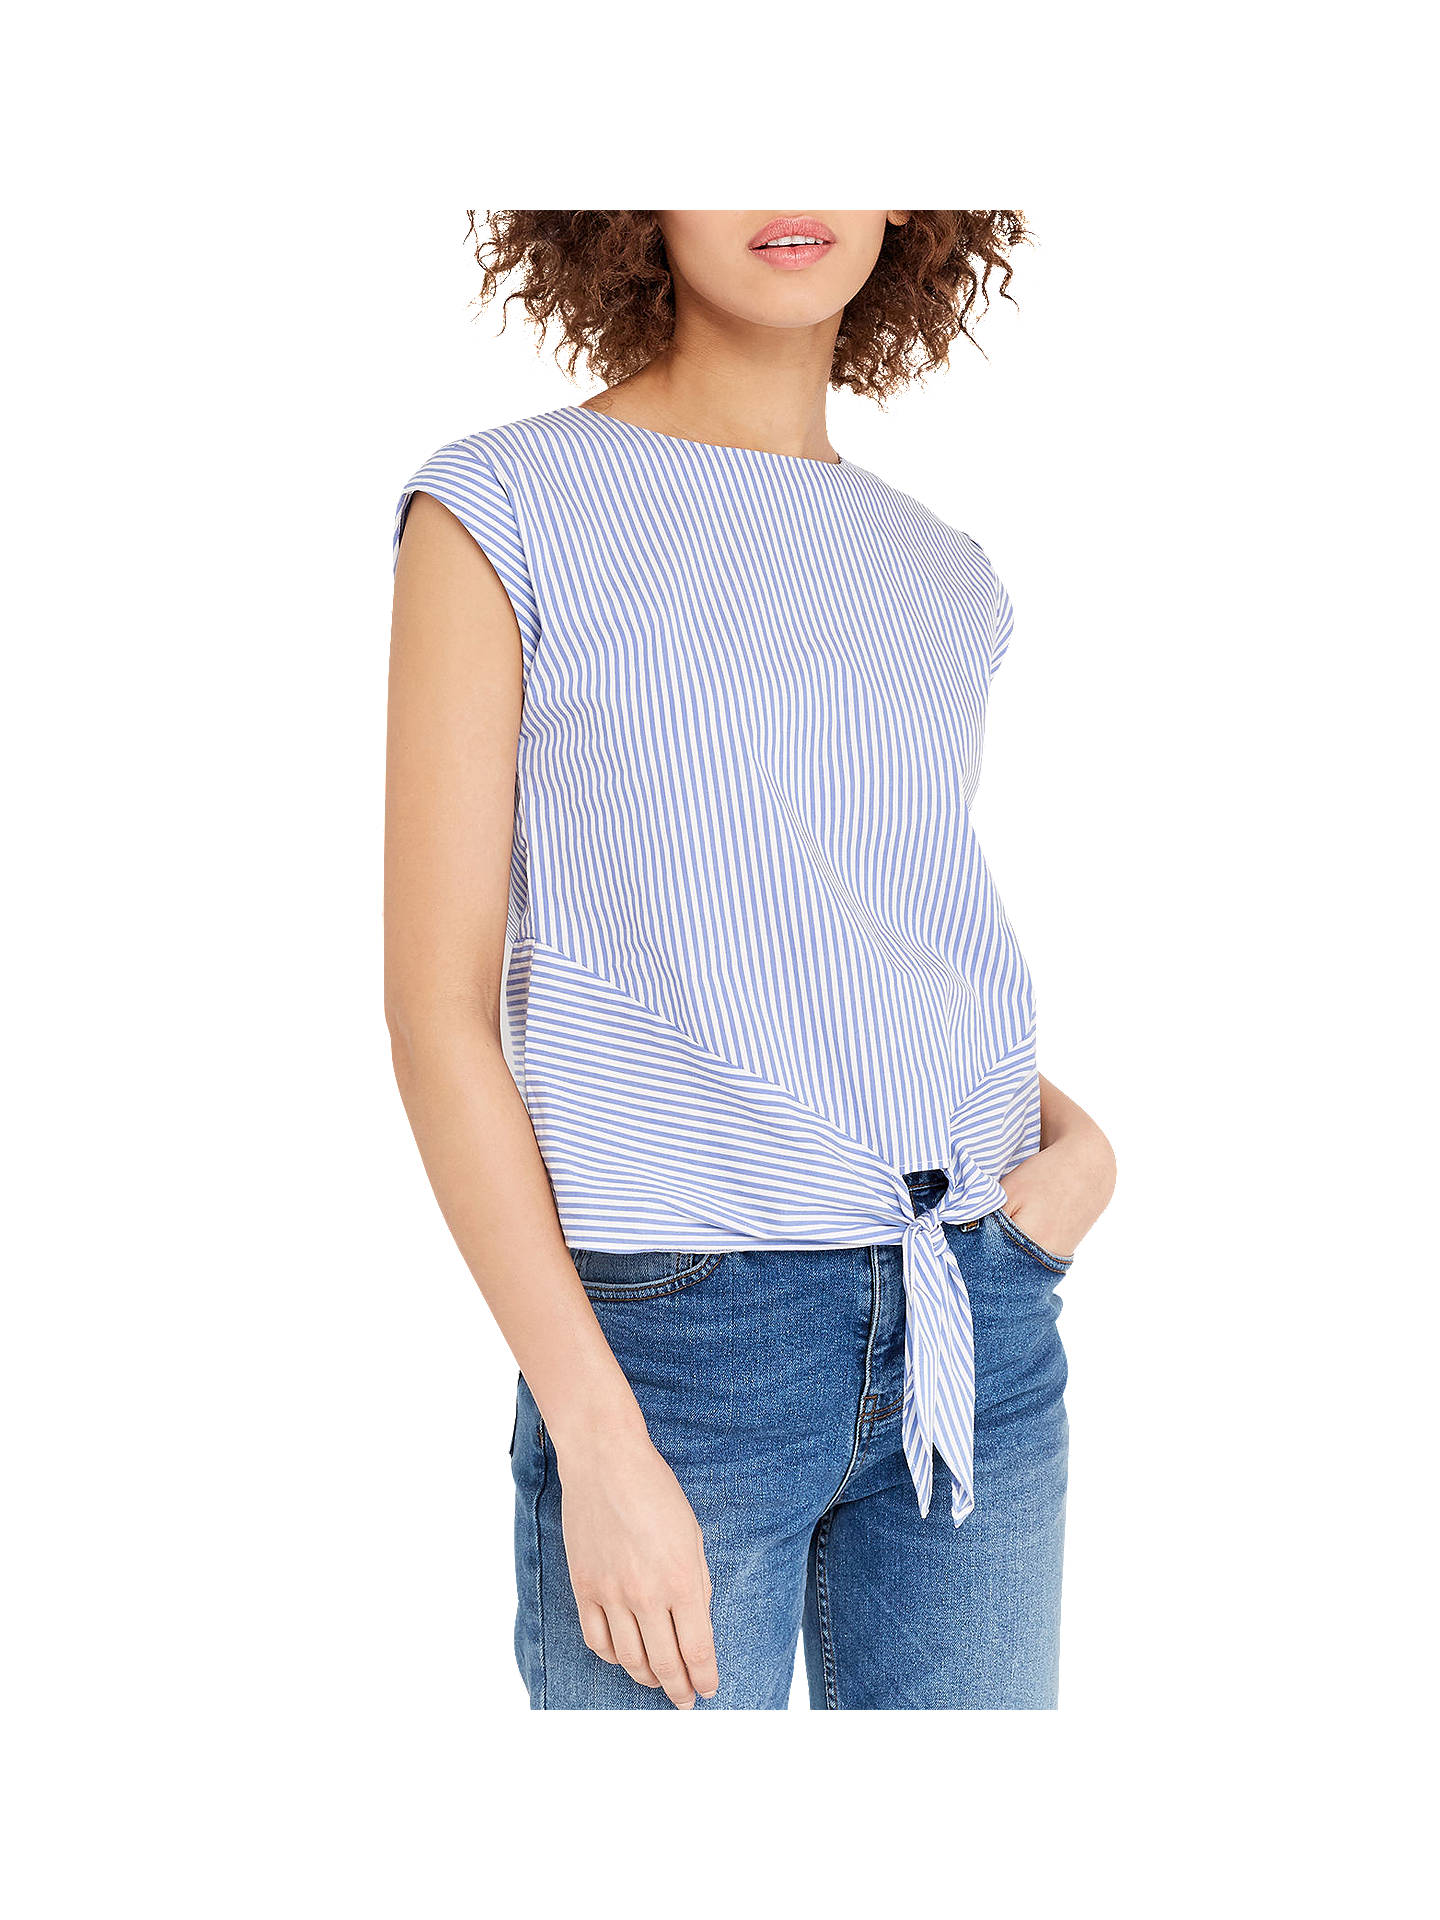 70aaa1f7f445 Buy Oasis Ticking Striped T-Shirt, Multi/Blue, 6 Online at johnlewis ...